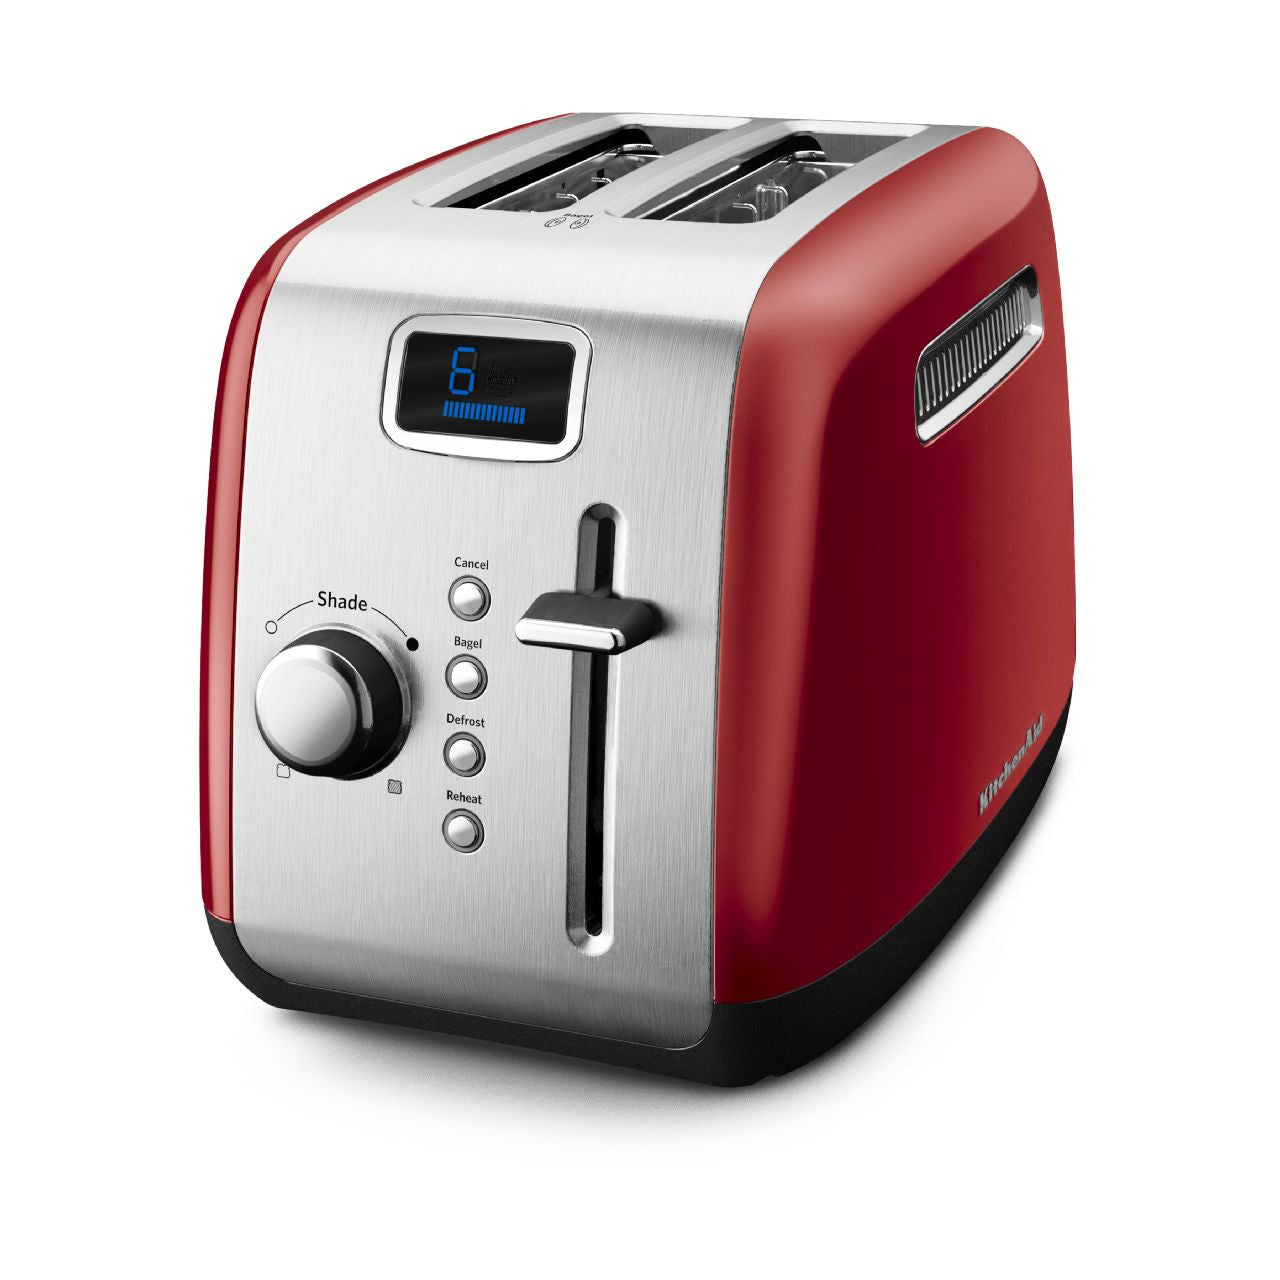 KitchenAid 2-Slice Toaster - Empire Red KMT222ER